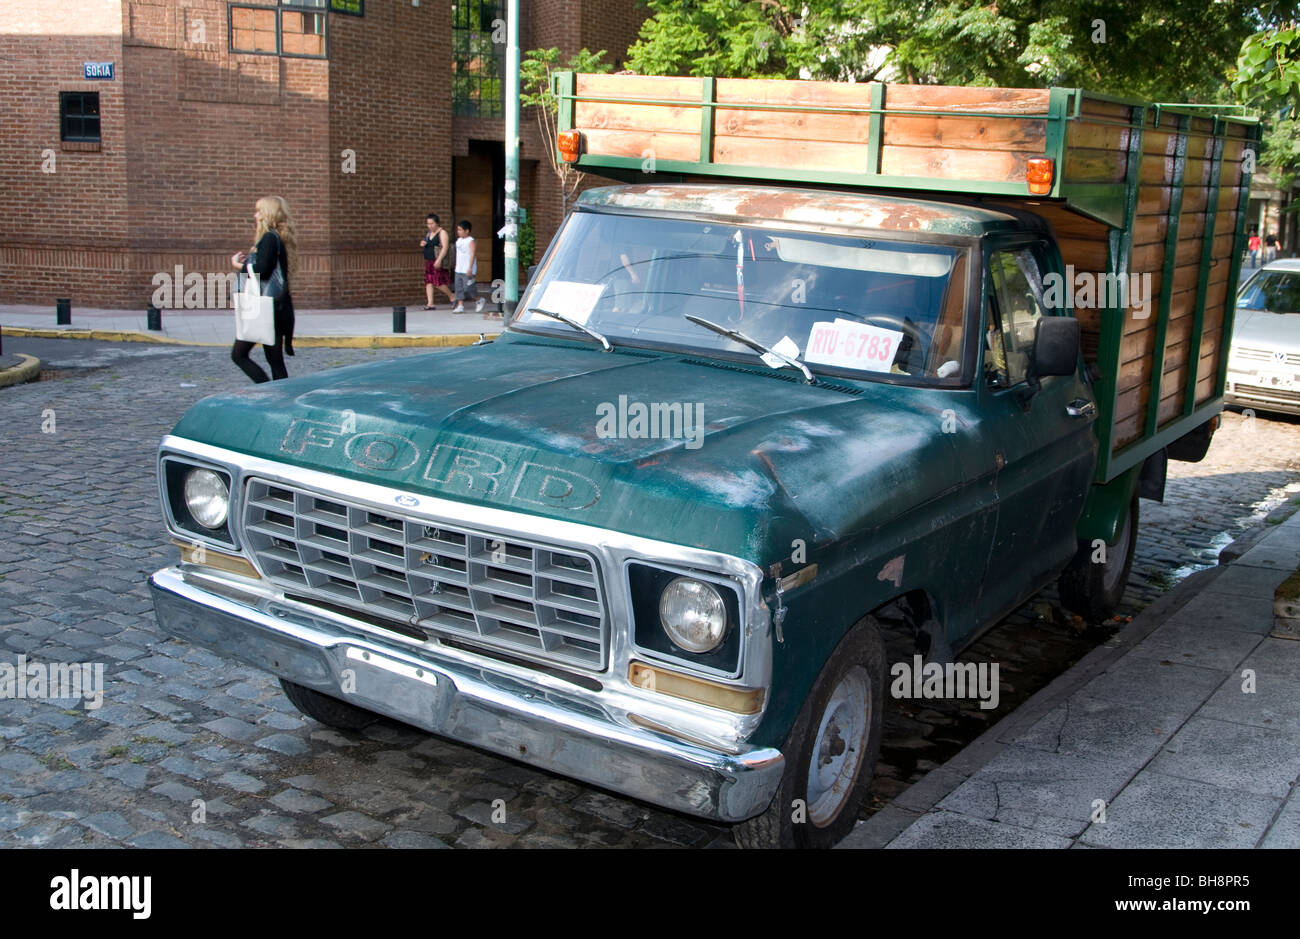 Buenos Aires Argentina old car truck street - Stock Image